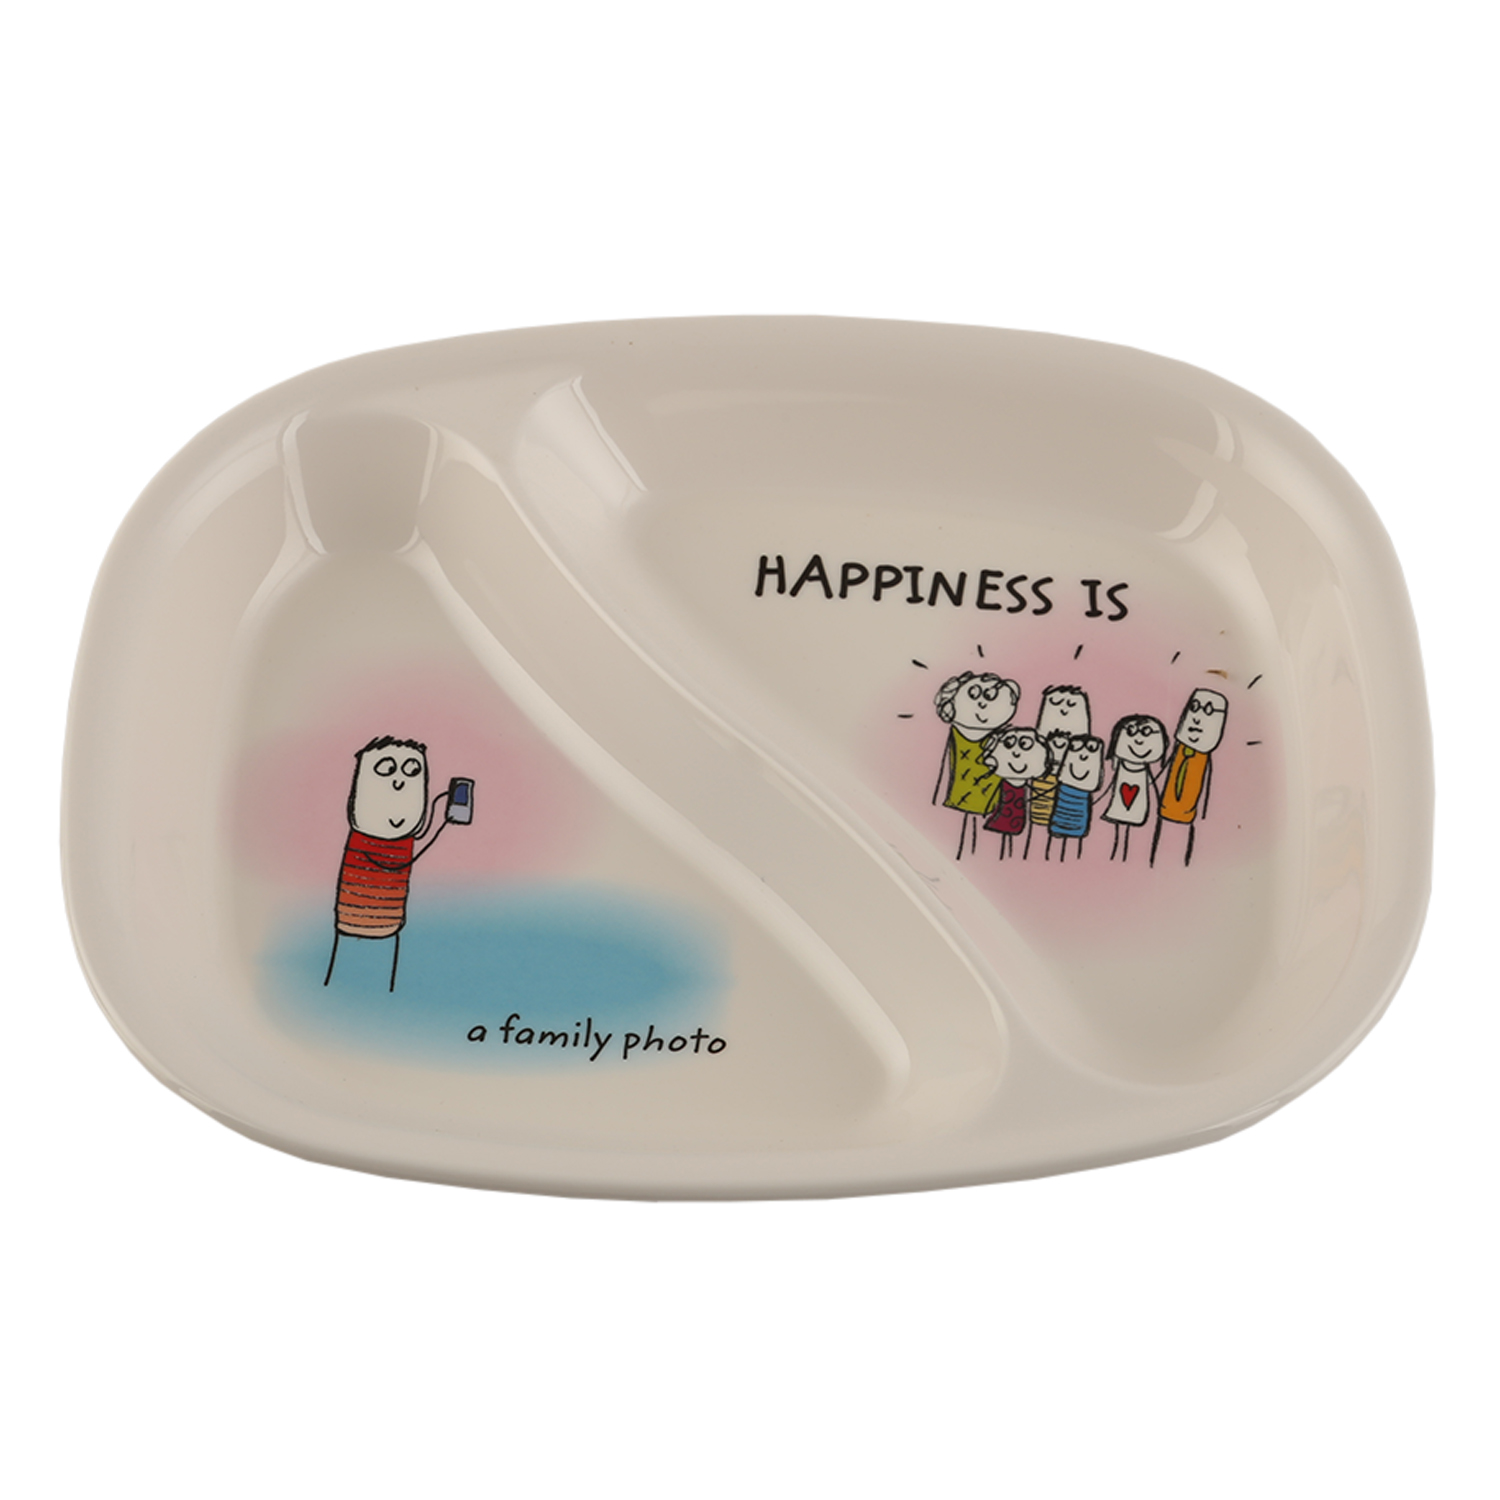 HAPPINESS KI & KA PLATE - Rad Plates in Multicolor Colour by Servewell